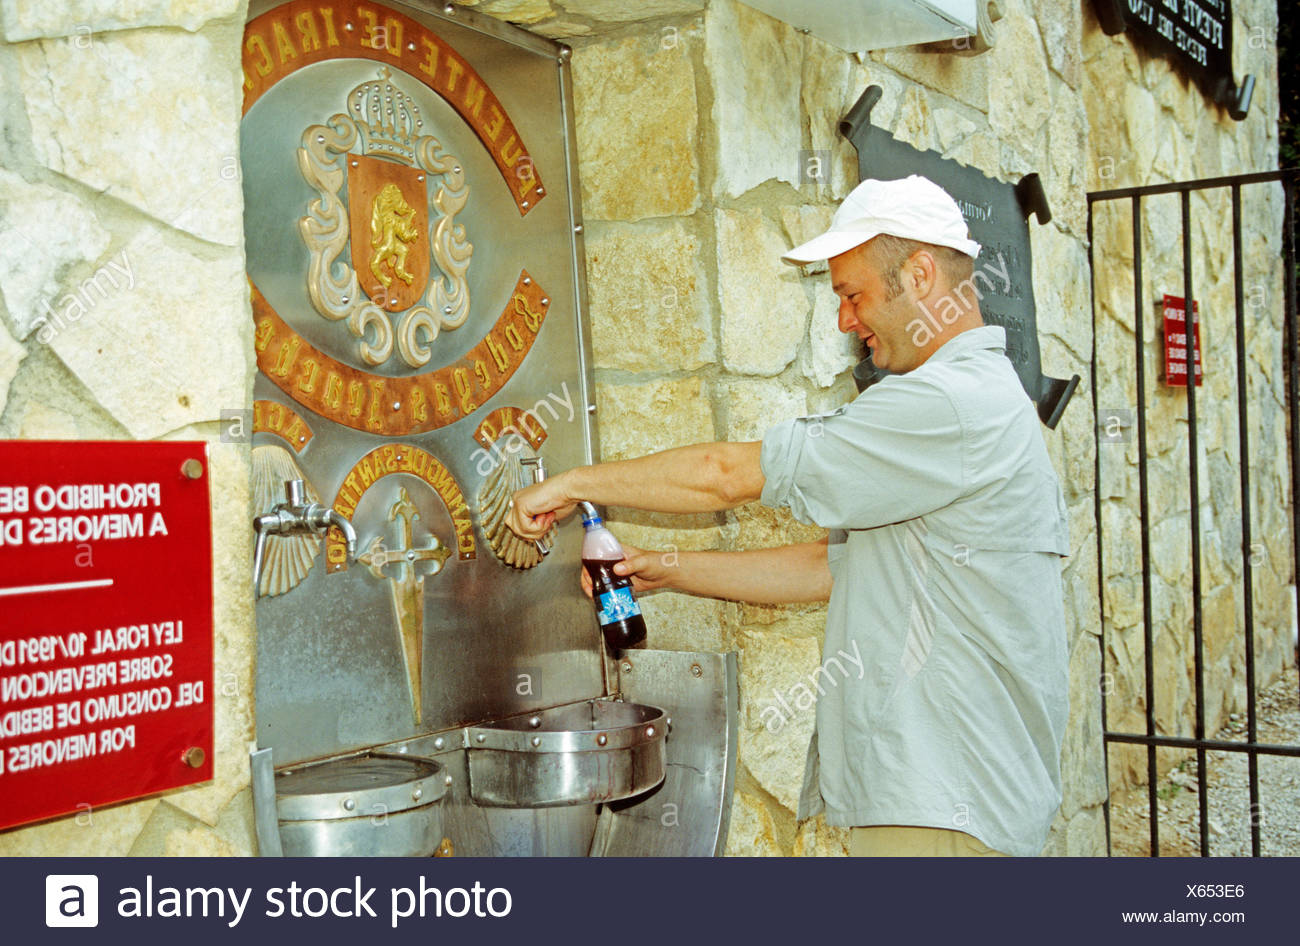 Water and wine free of charge for the pilgrims spain - Stock Image